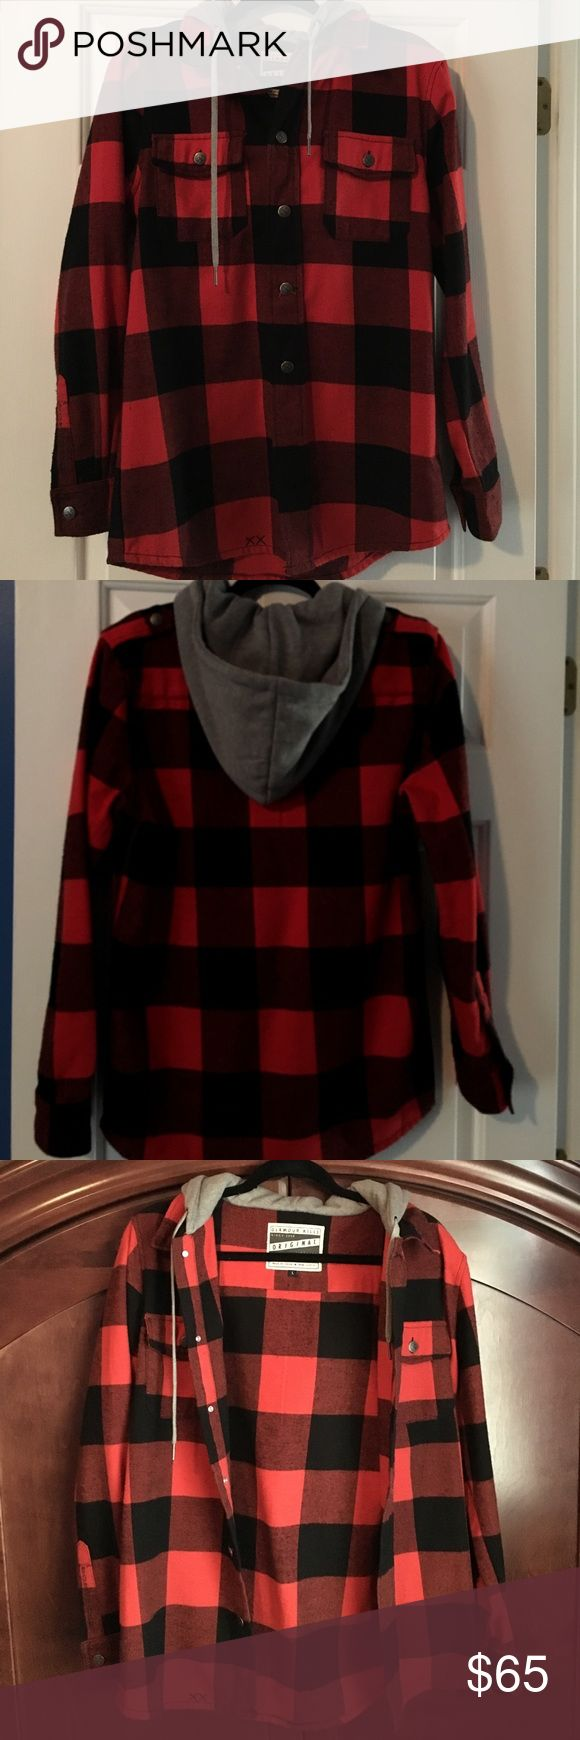 GLAMOUR KILLS  Henderson jacket. Red/Black plaid This red and black plaid glamour kills Henderson  jacket has only been worn once. It is the perfect light jacket for the fall transitioning into winter! Button up with gray hoodie!  Super comfortable jacket that can be worn by both men and women Jackets & Coats